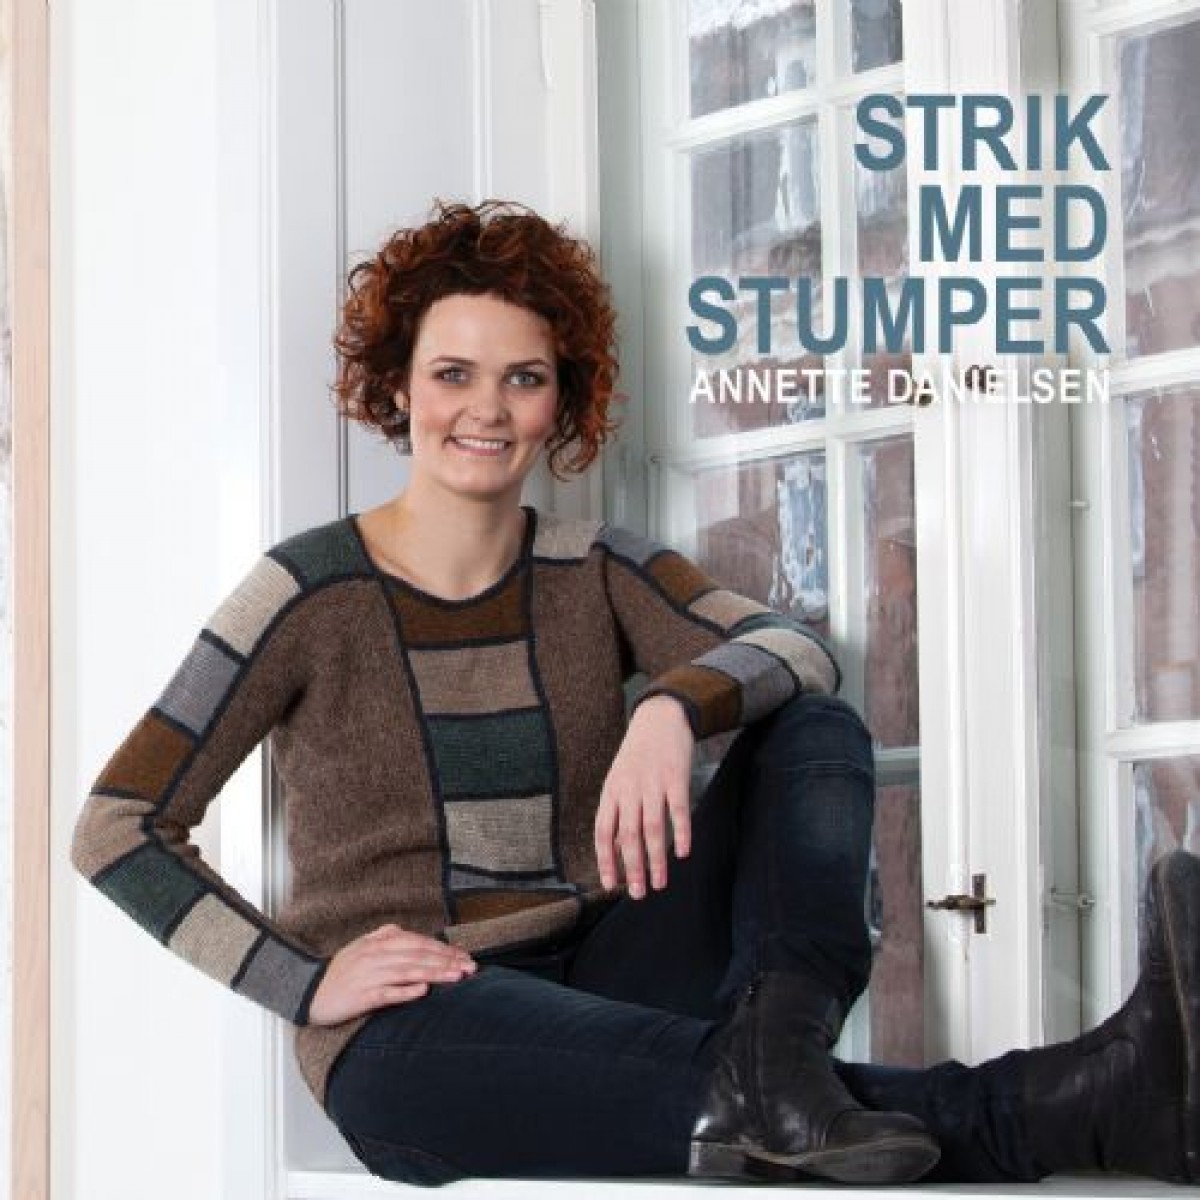 Strik med stumper-31